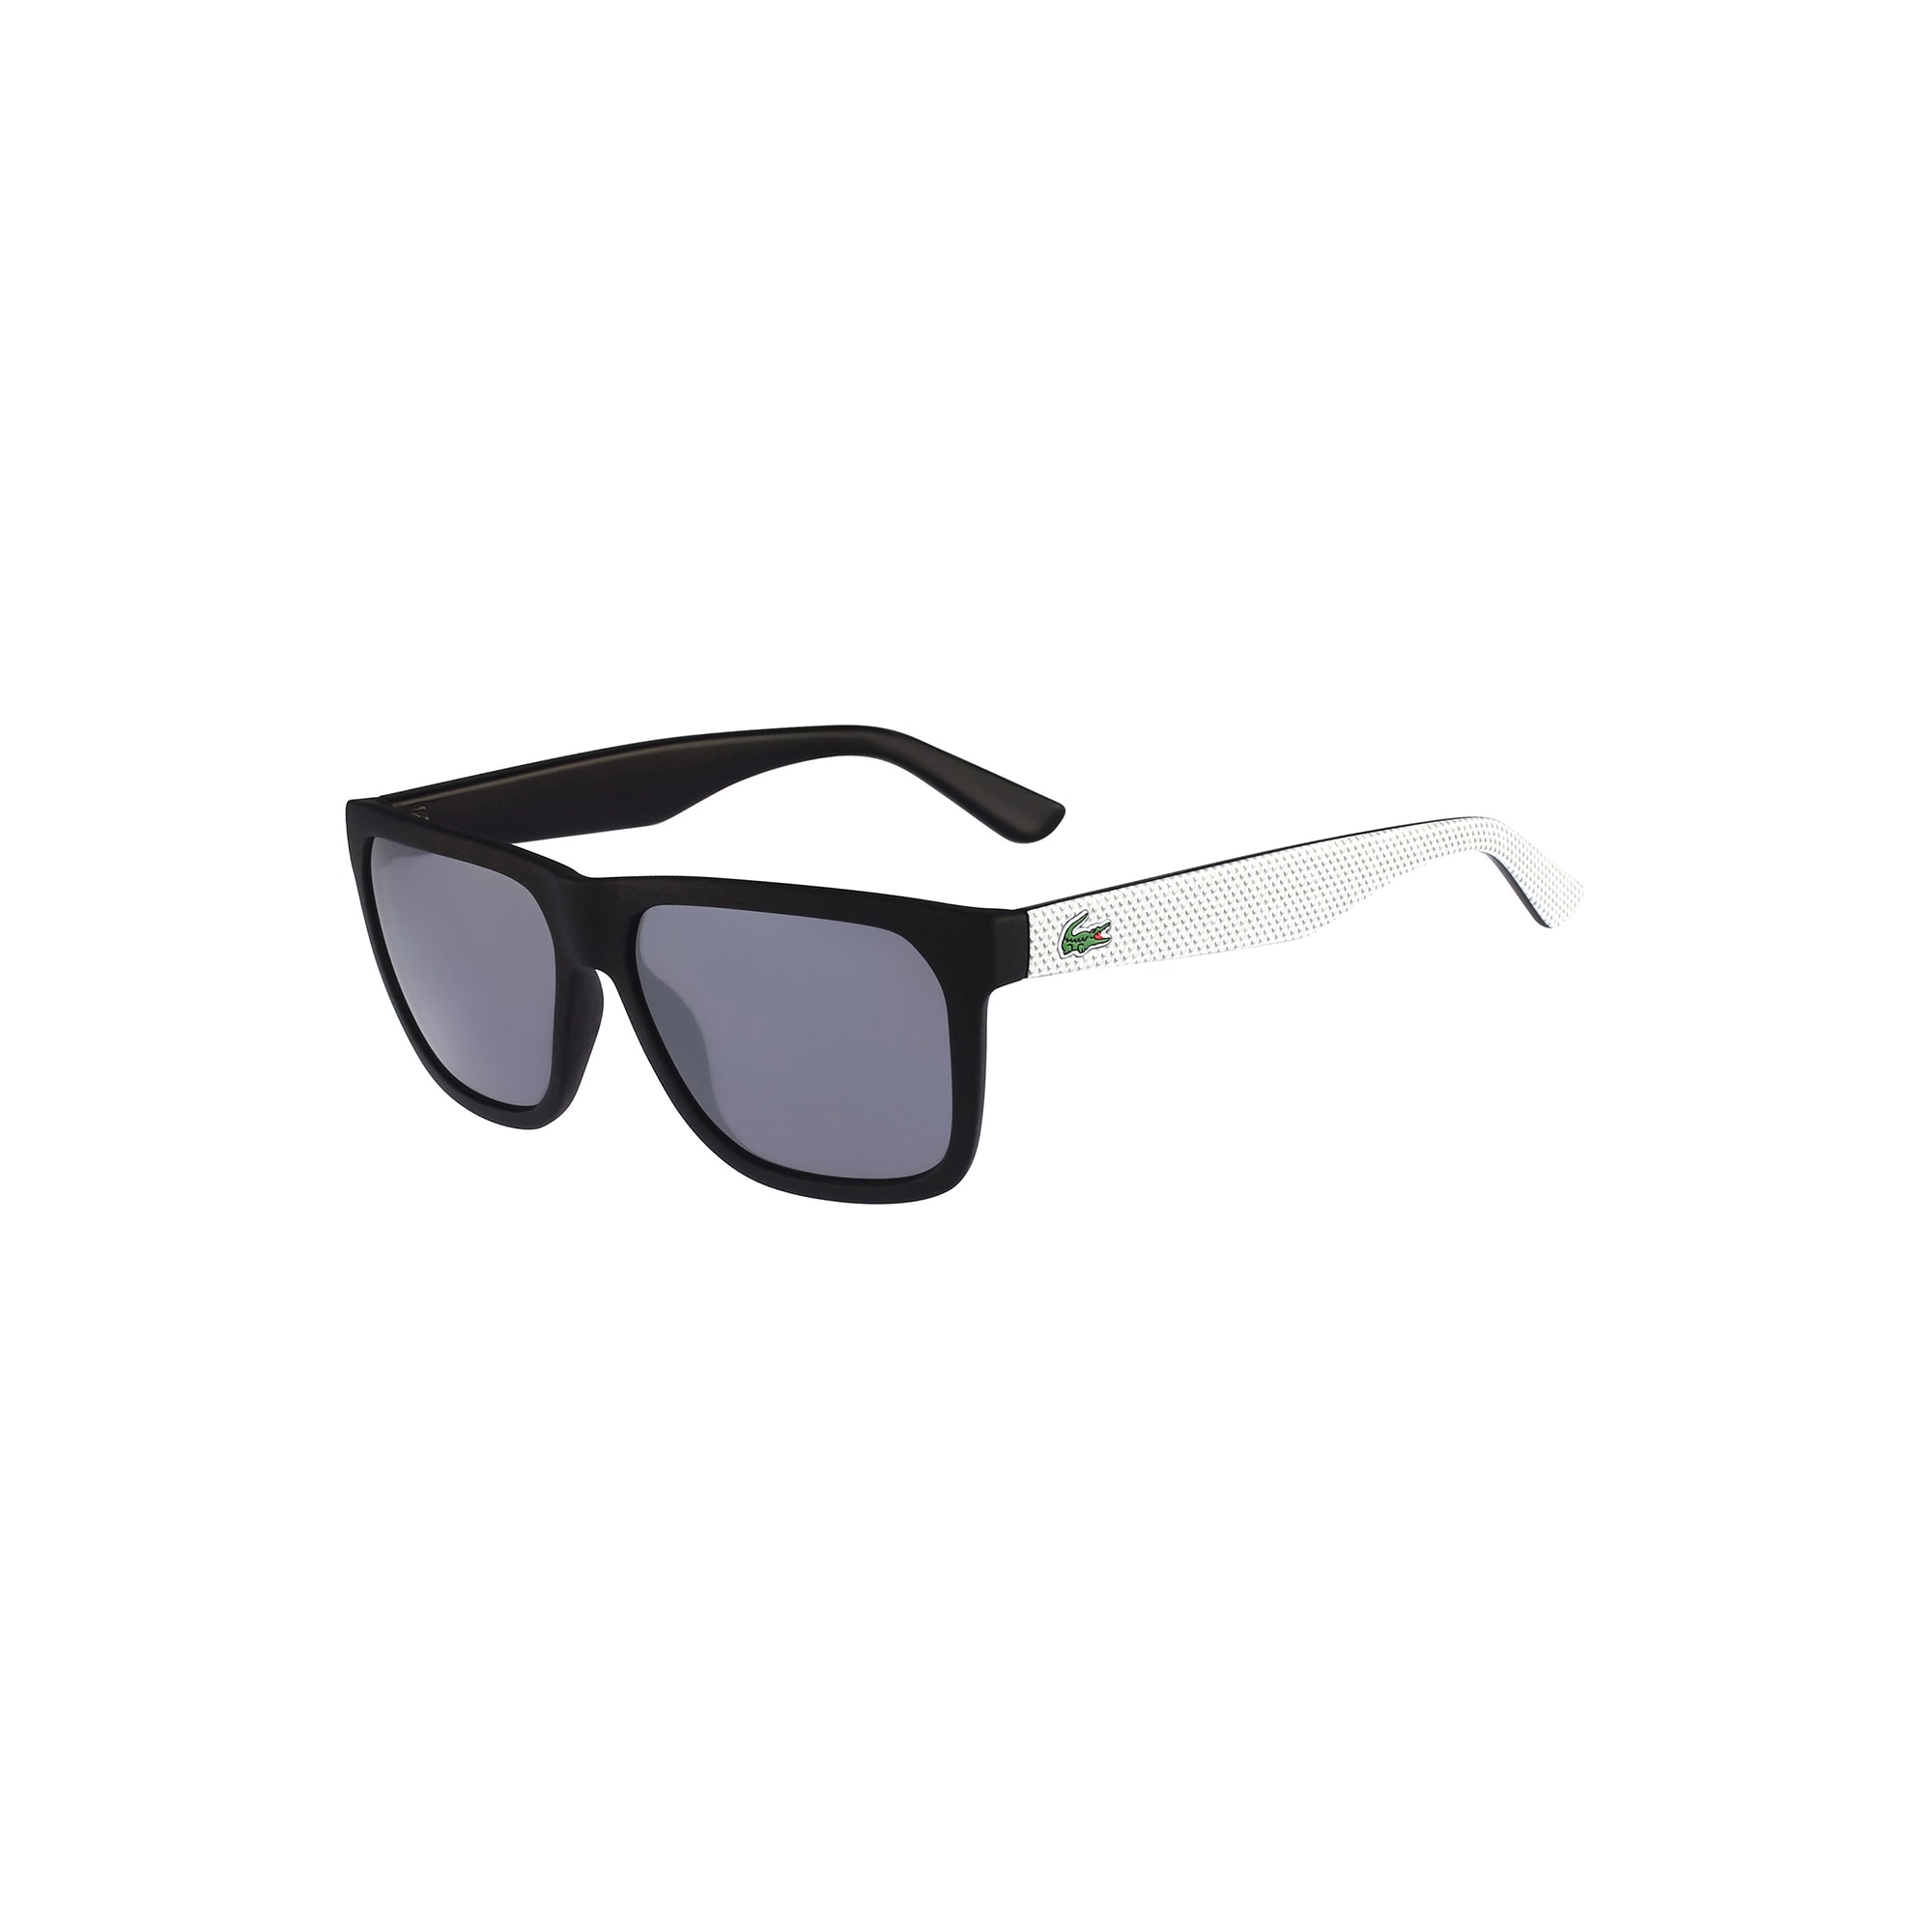 Men's Classic Wayfarer Sunglasses